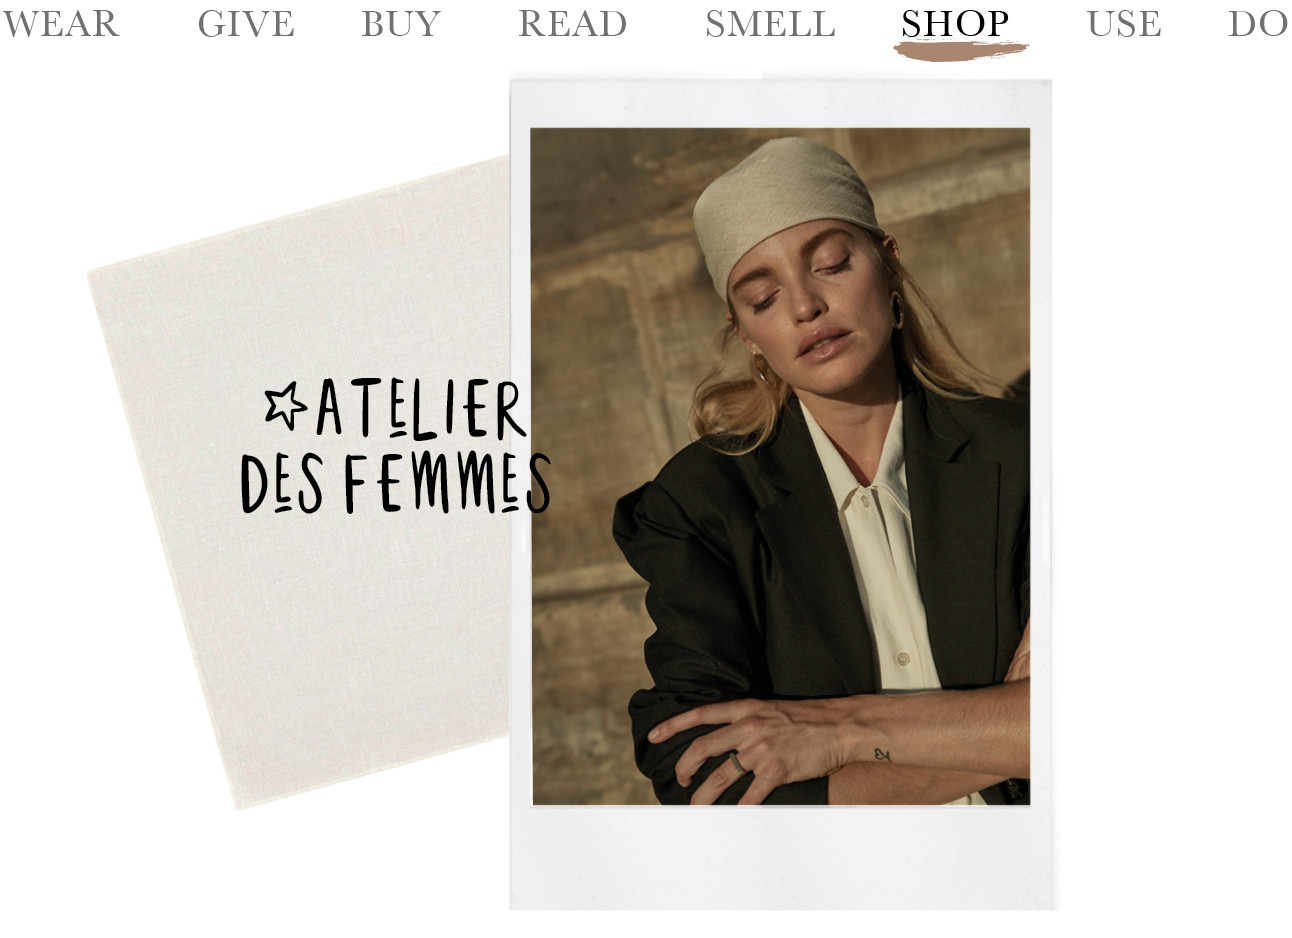 Today we shop at Atelier des Femmes